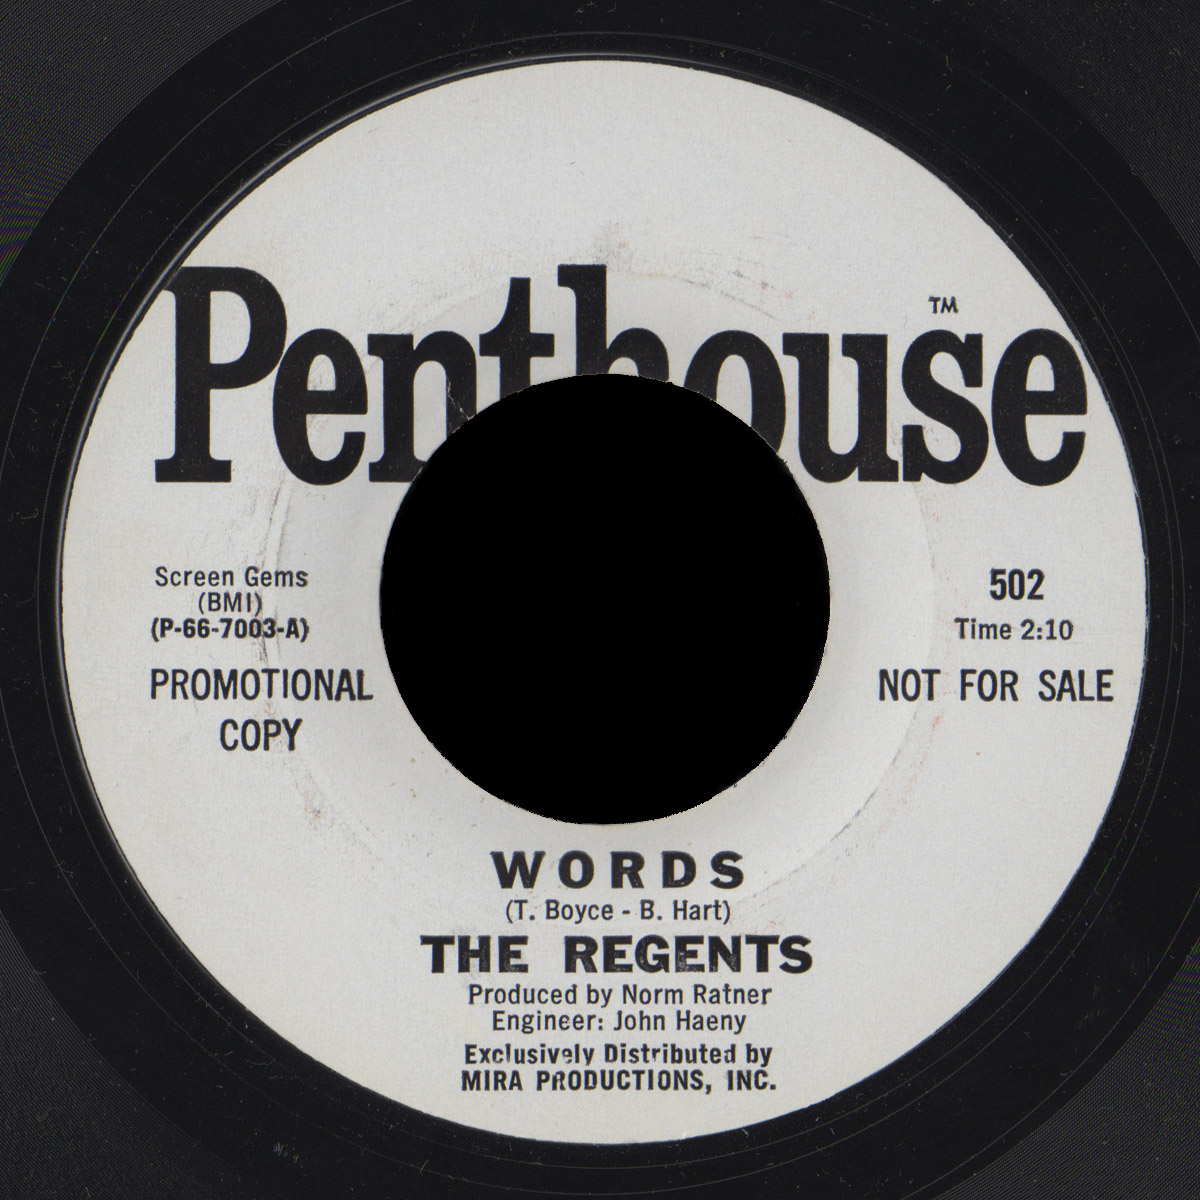 The Regents Penthouse 45 Words